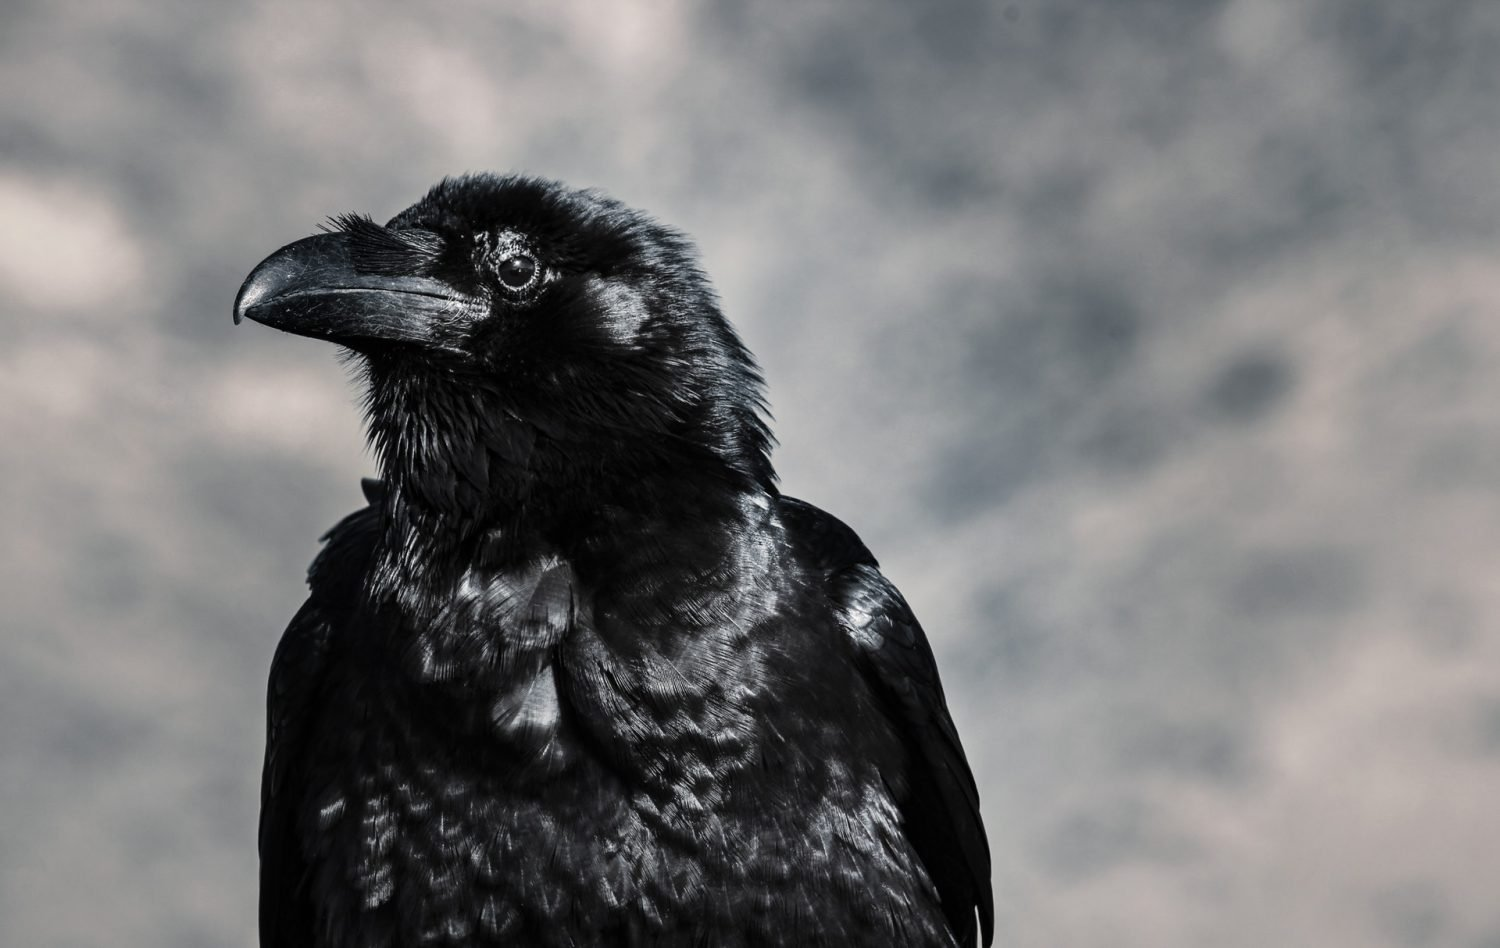 The Tower of London - The Tower Ravens